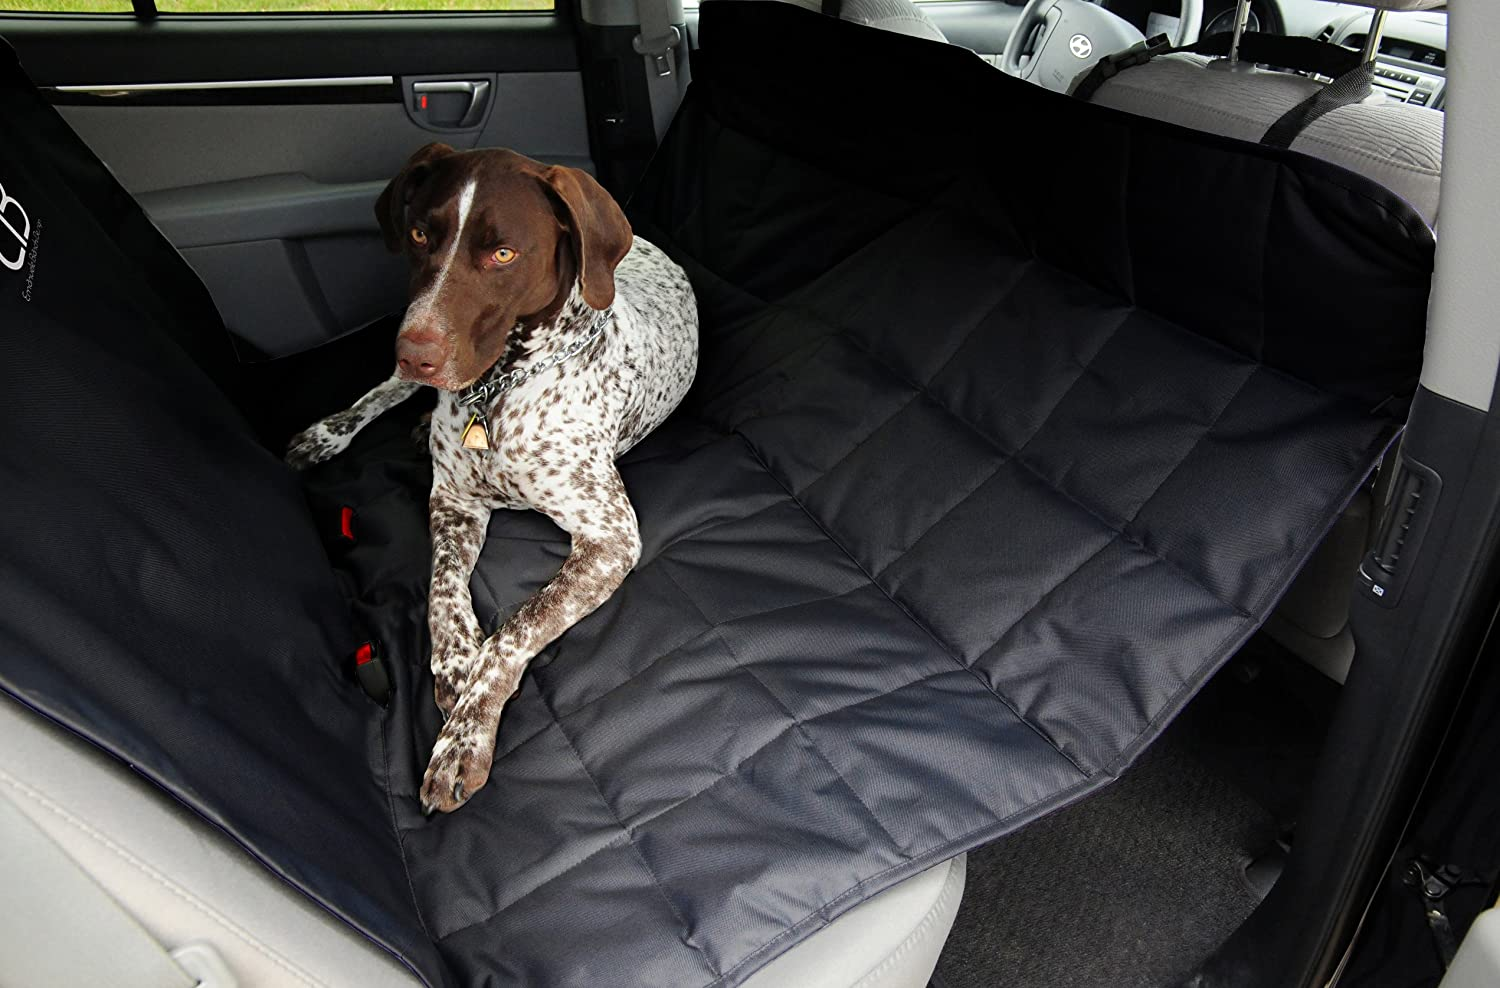 feature hammock dog mat waterproof convertible protector back finelife seat cover new final bench nv car pet